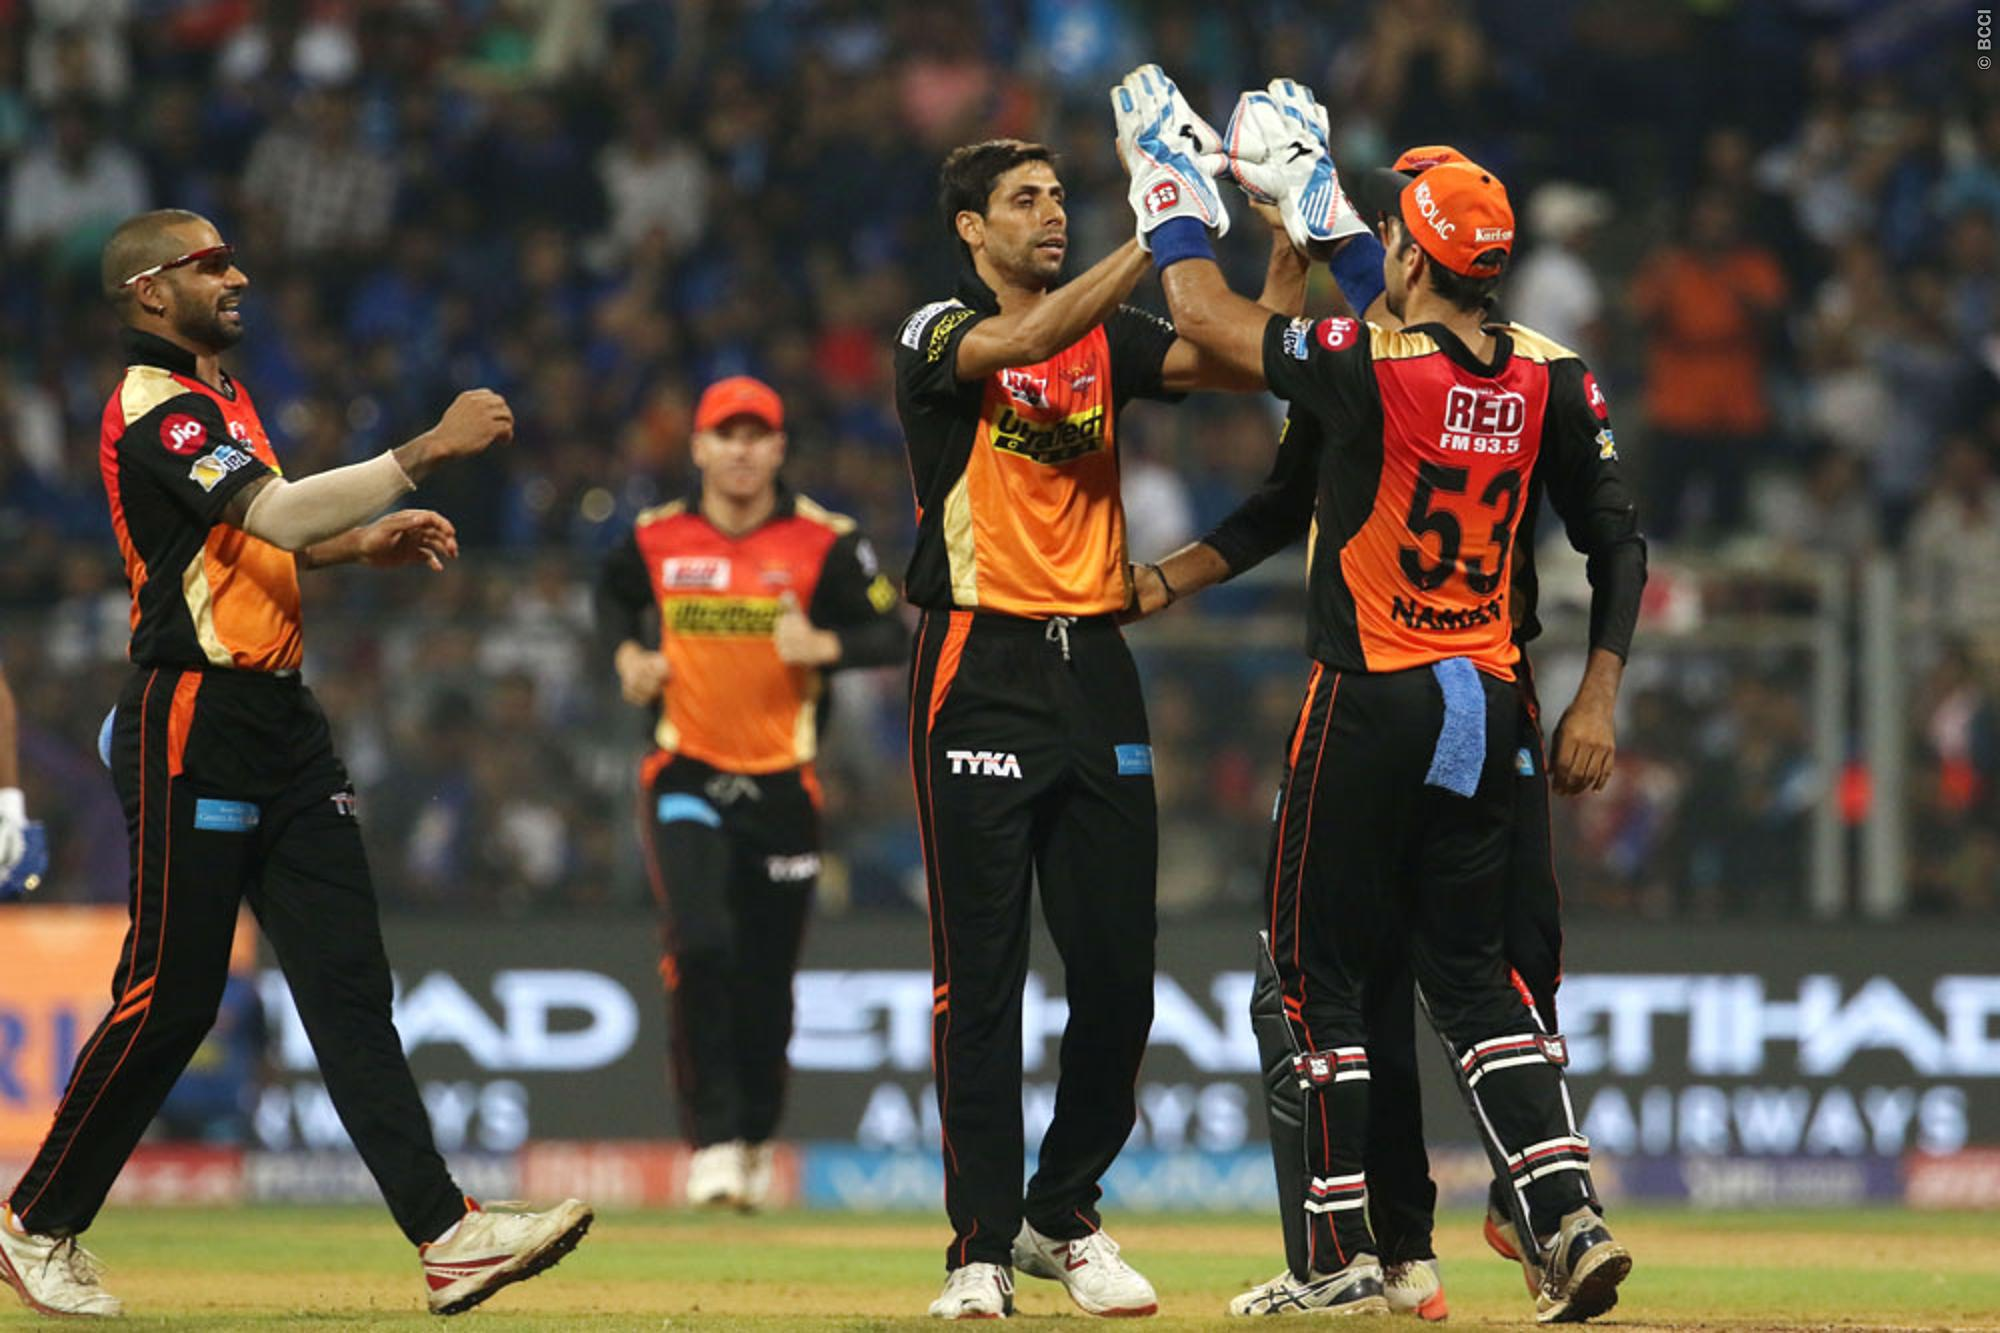 Is Ashish Nehra Good Enough for ODI Cricket?